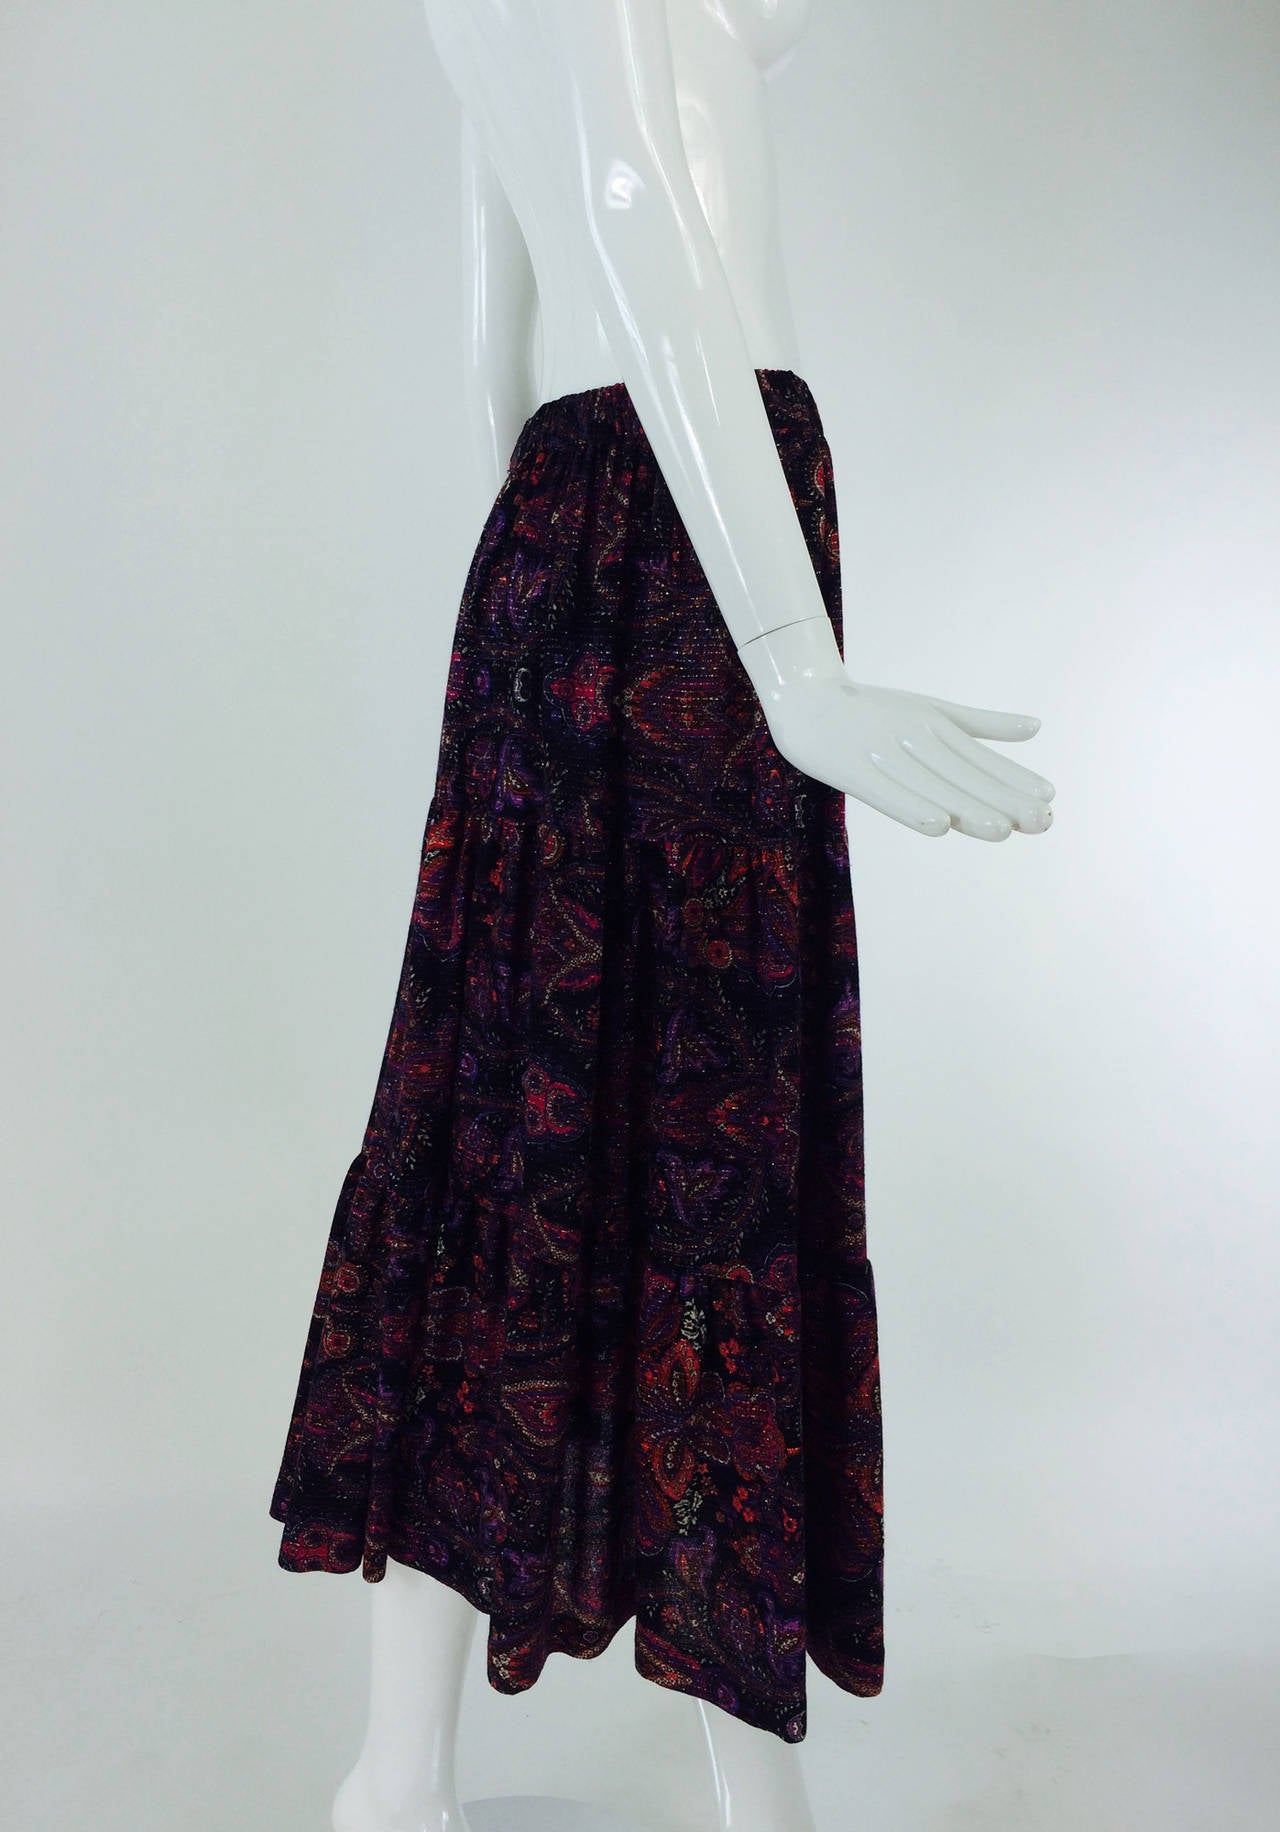 Yves St Laurent YSL Rive Gauche metallic paisley tiered gypsy skirt 1970s For Sale 4